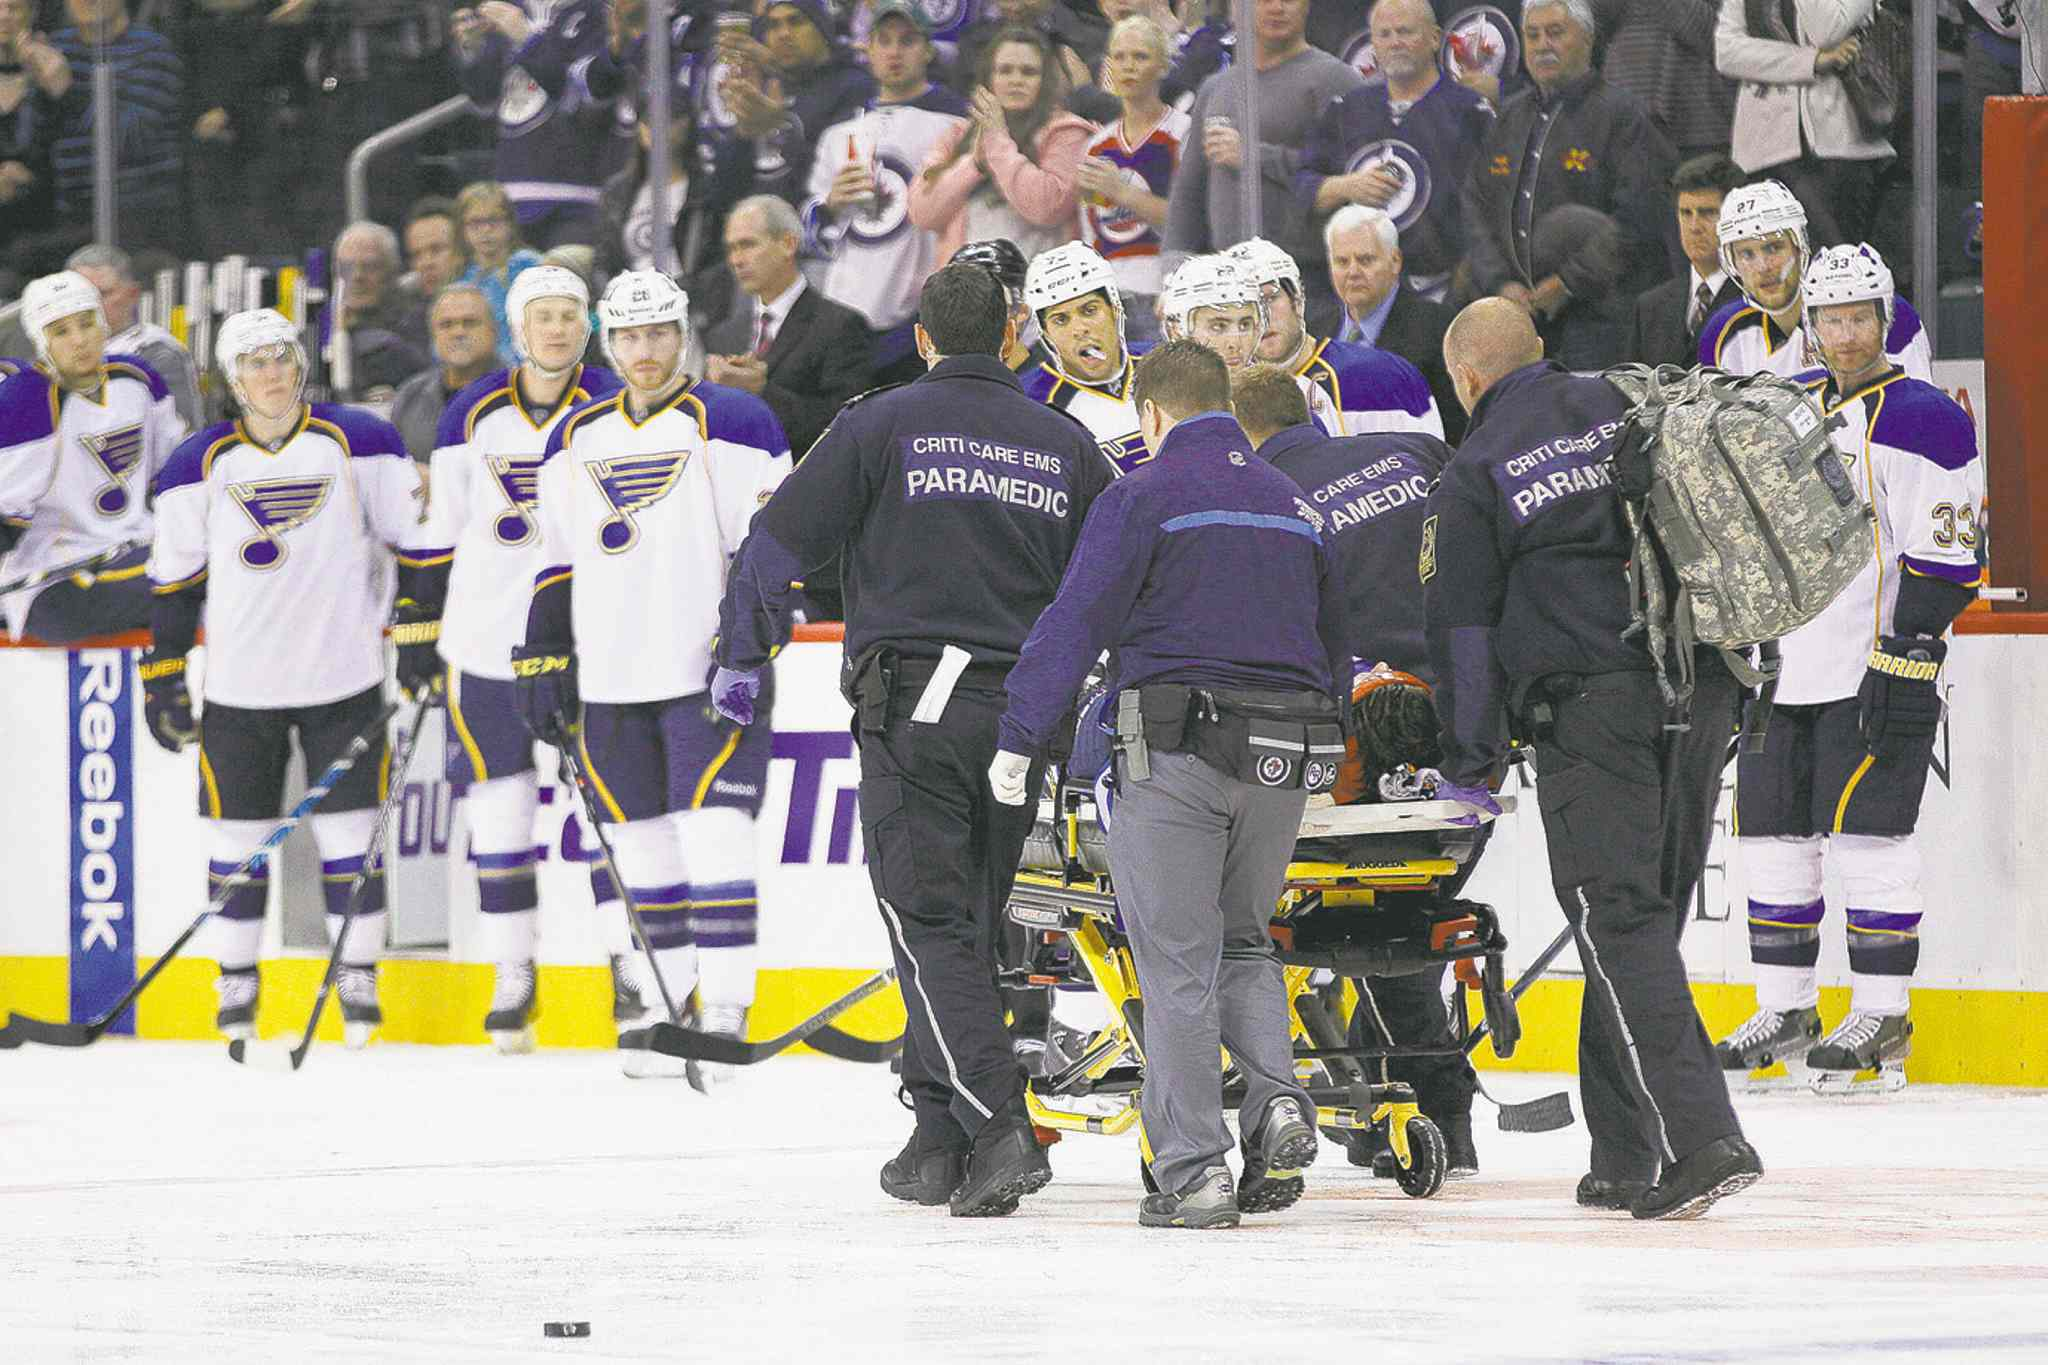 John Woods / the canadian pressWinnipeg Jets D-man Jacob Trouba is taken off the ice by paramedics after crashing headfirst into the boards during the second period Friday night.